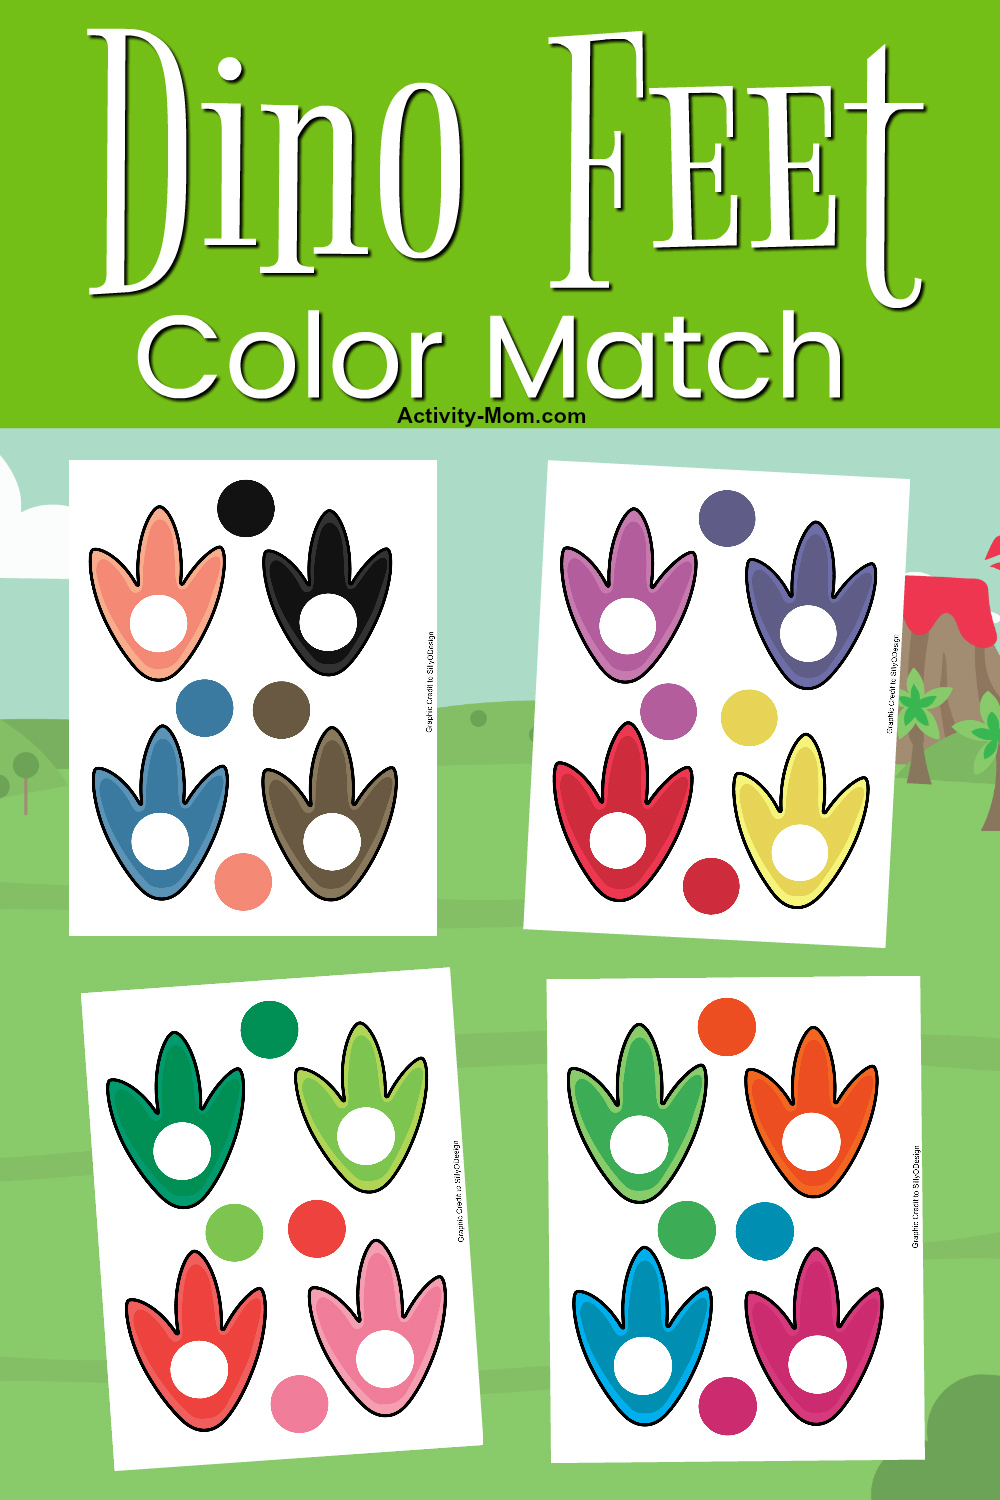 Dinosaur Color Matching FREE Printable